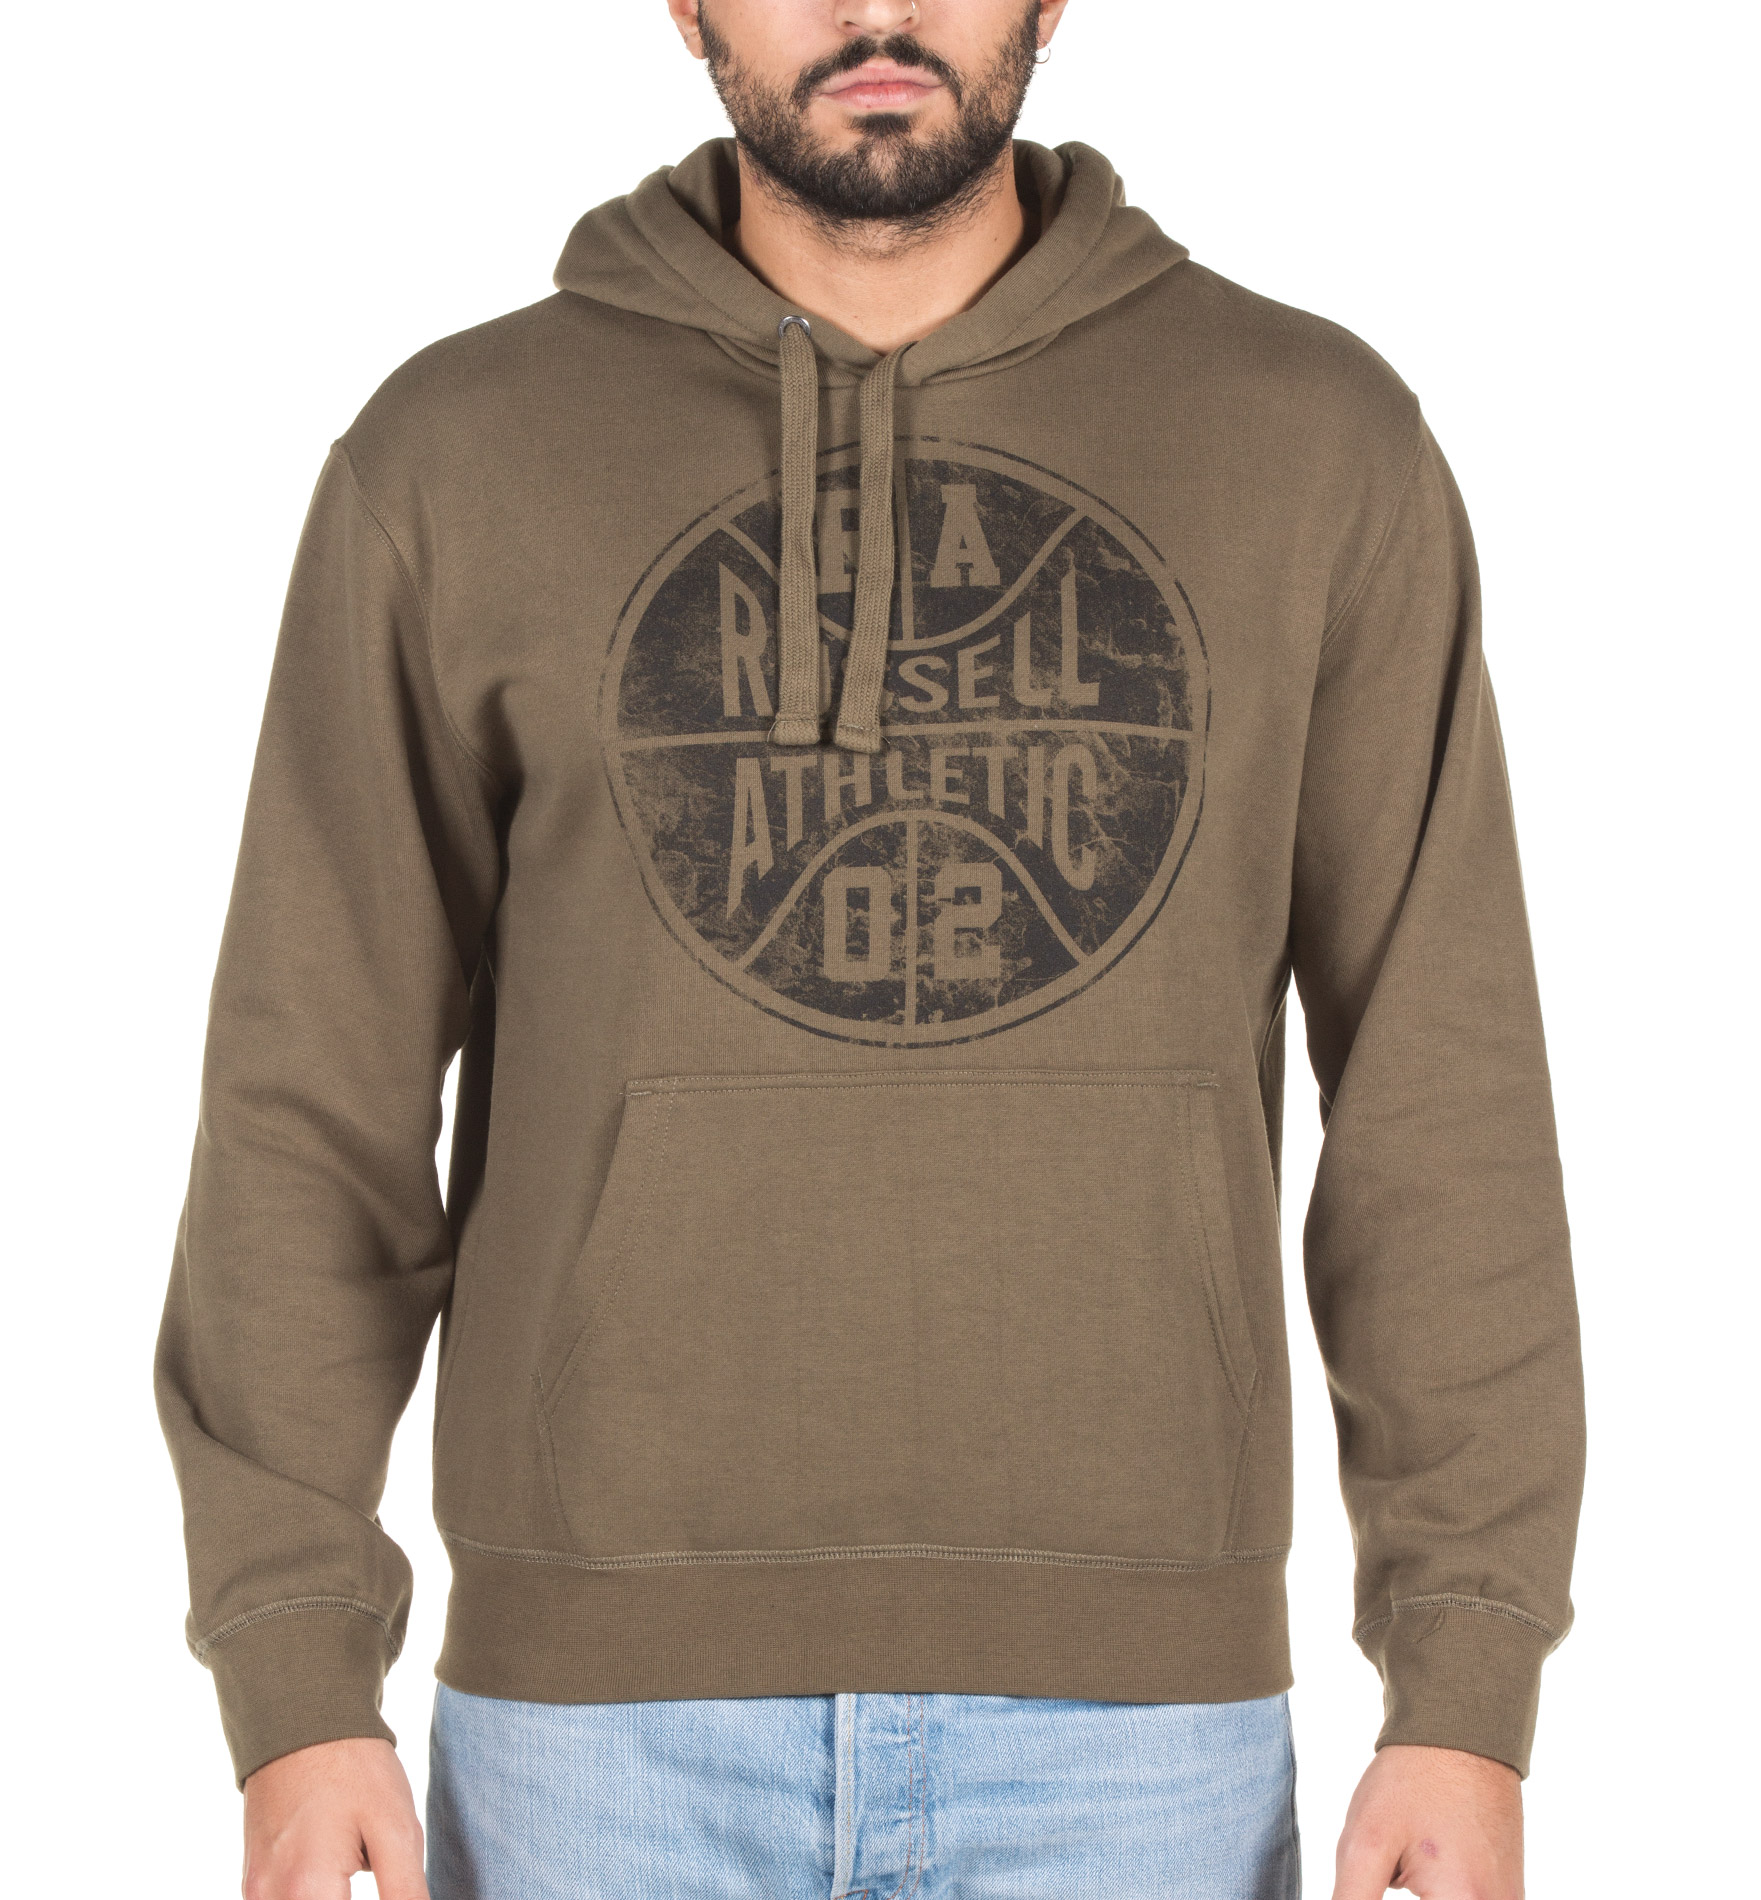 RUSSELL ATHLETIC PULL OVER HOODIE SWEAT A7-067-2-257 Χακί